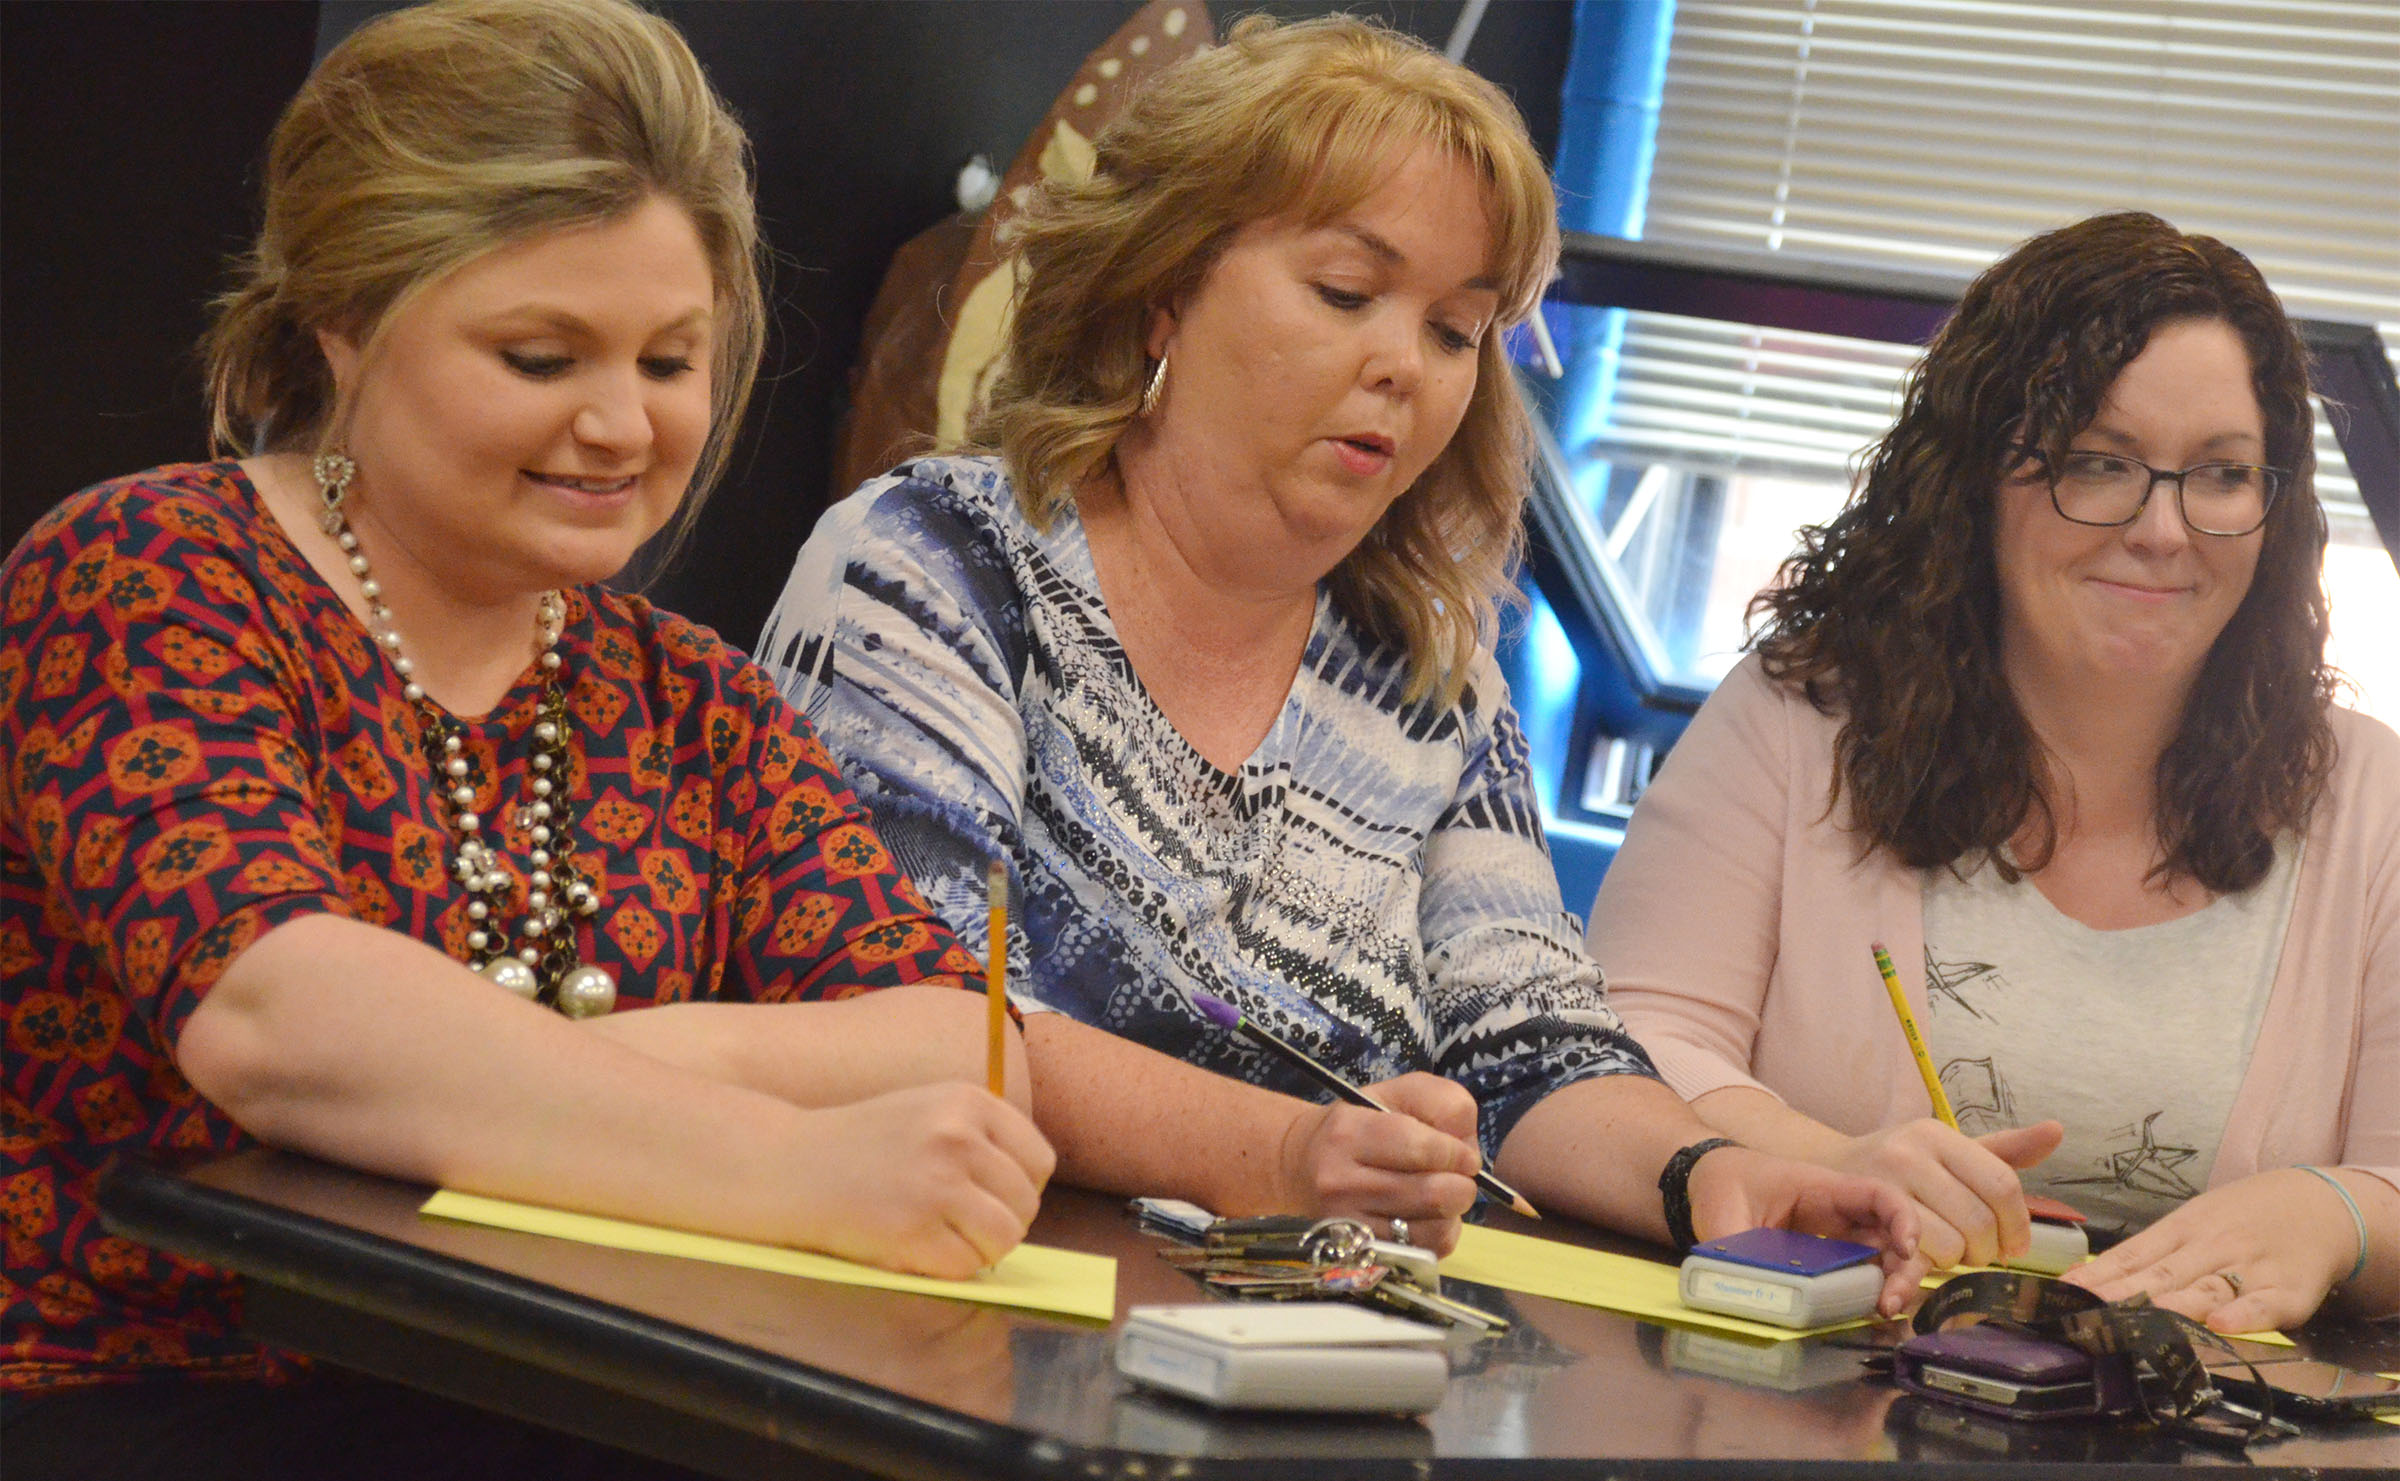 CHS teachers, from left, Lauren Bennett, Sonya Kessler and Lindsay Williams work a math problem.